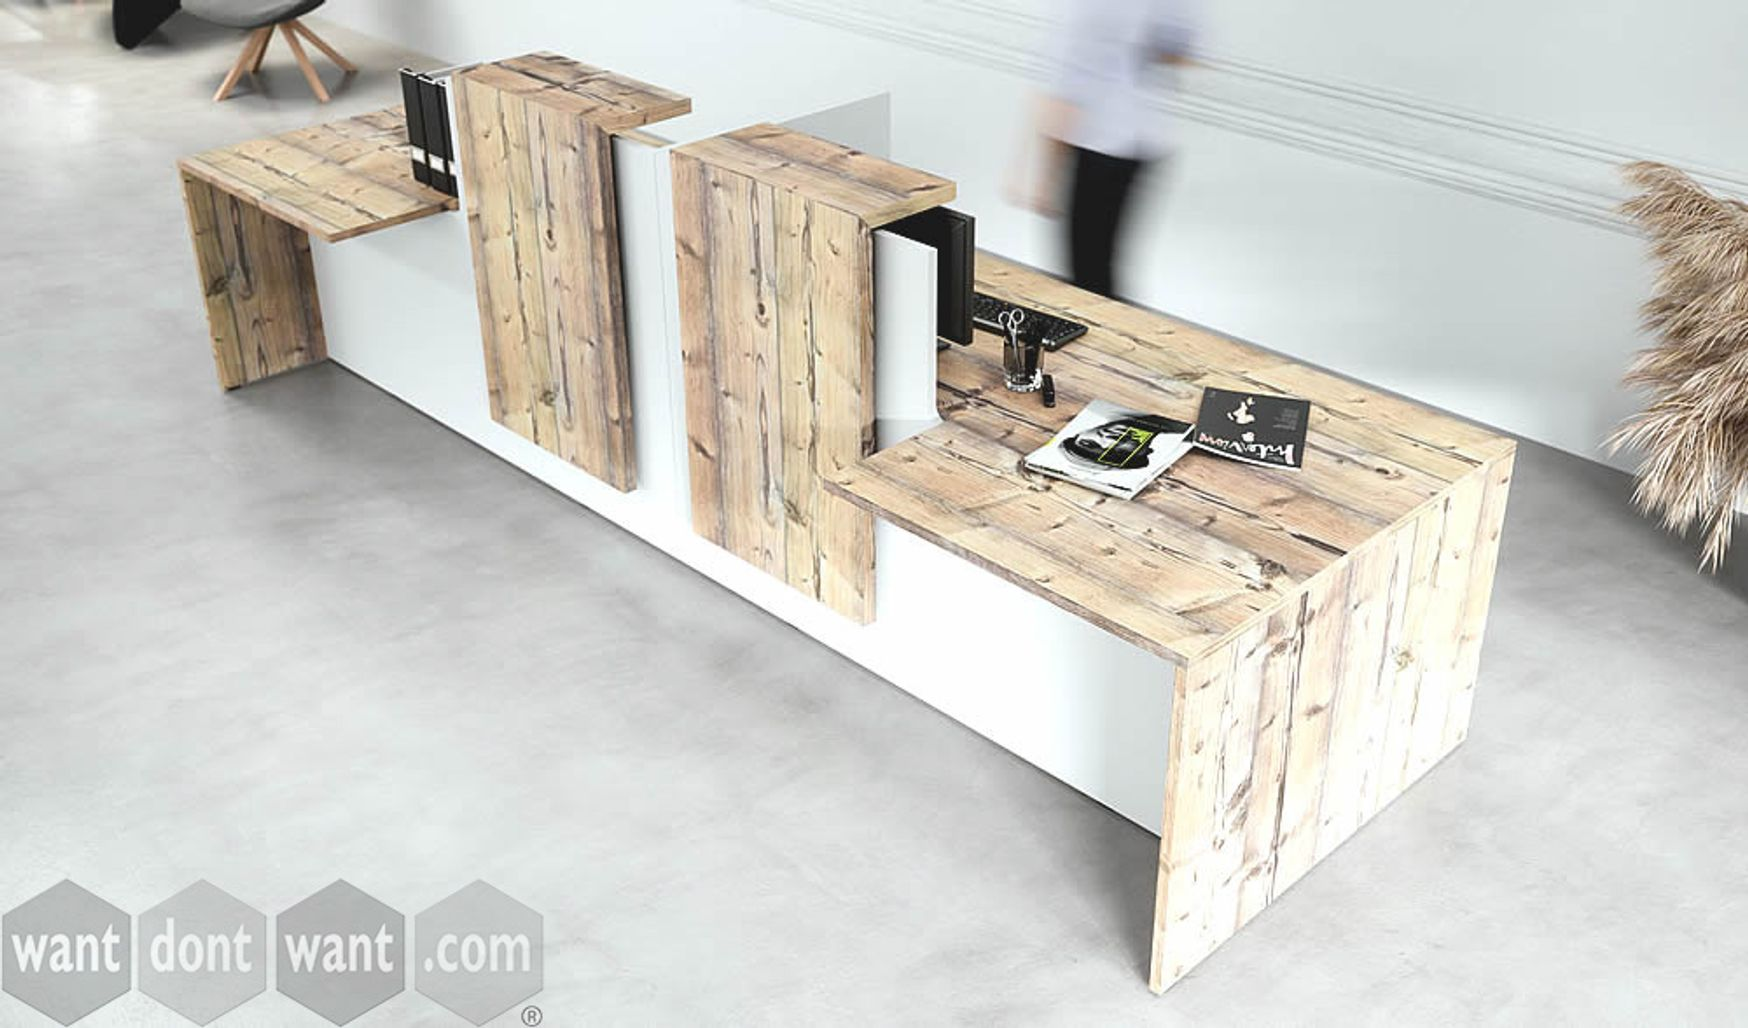 An eye-catching brand new reception desk in a contrasting white and timber finish.